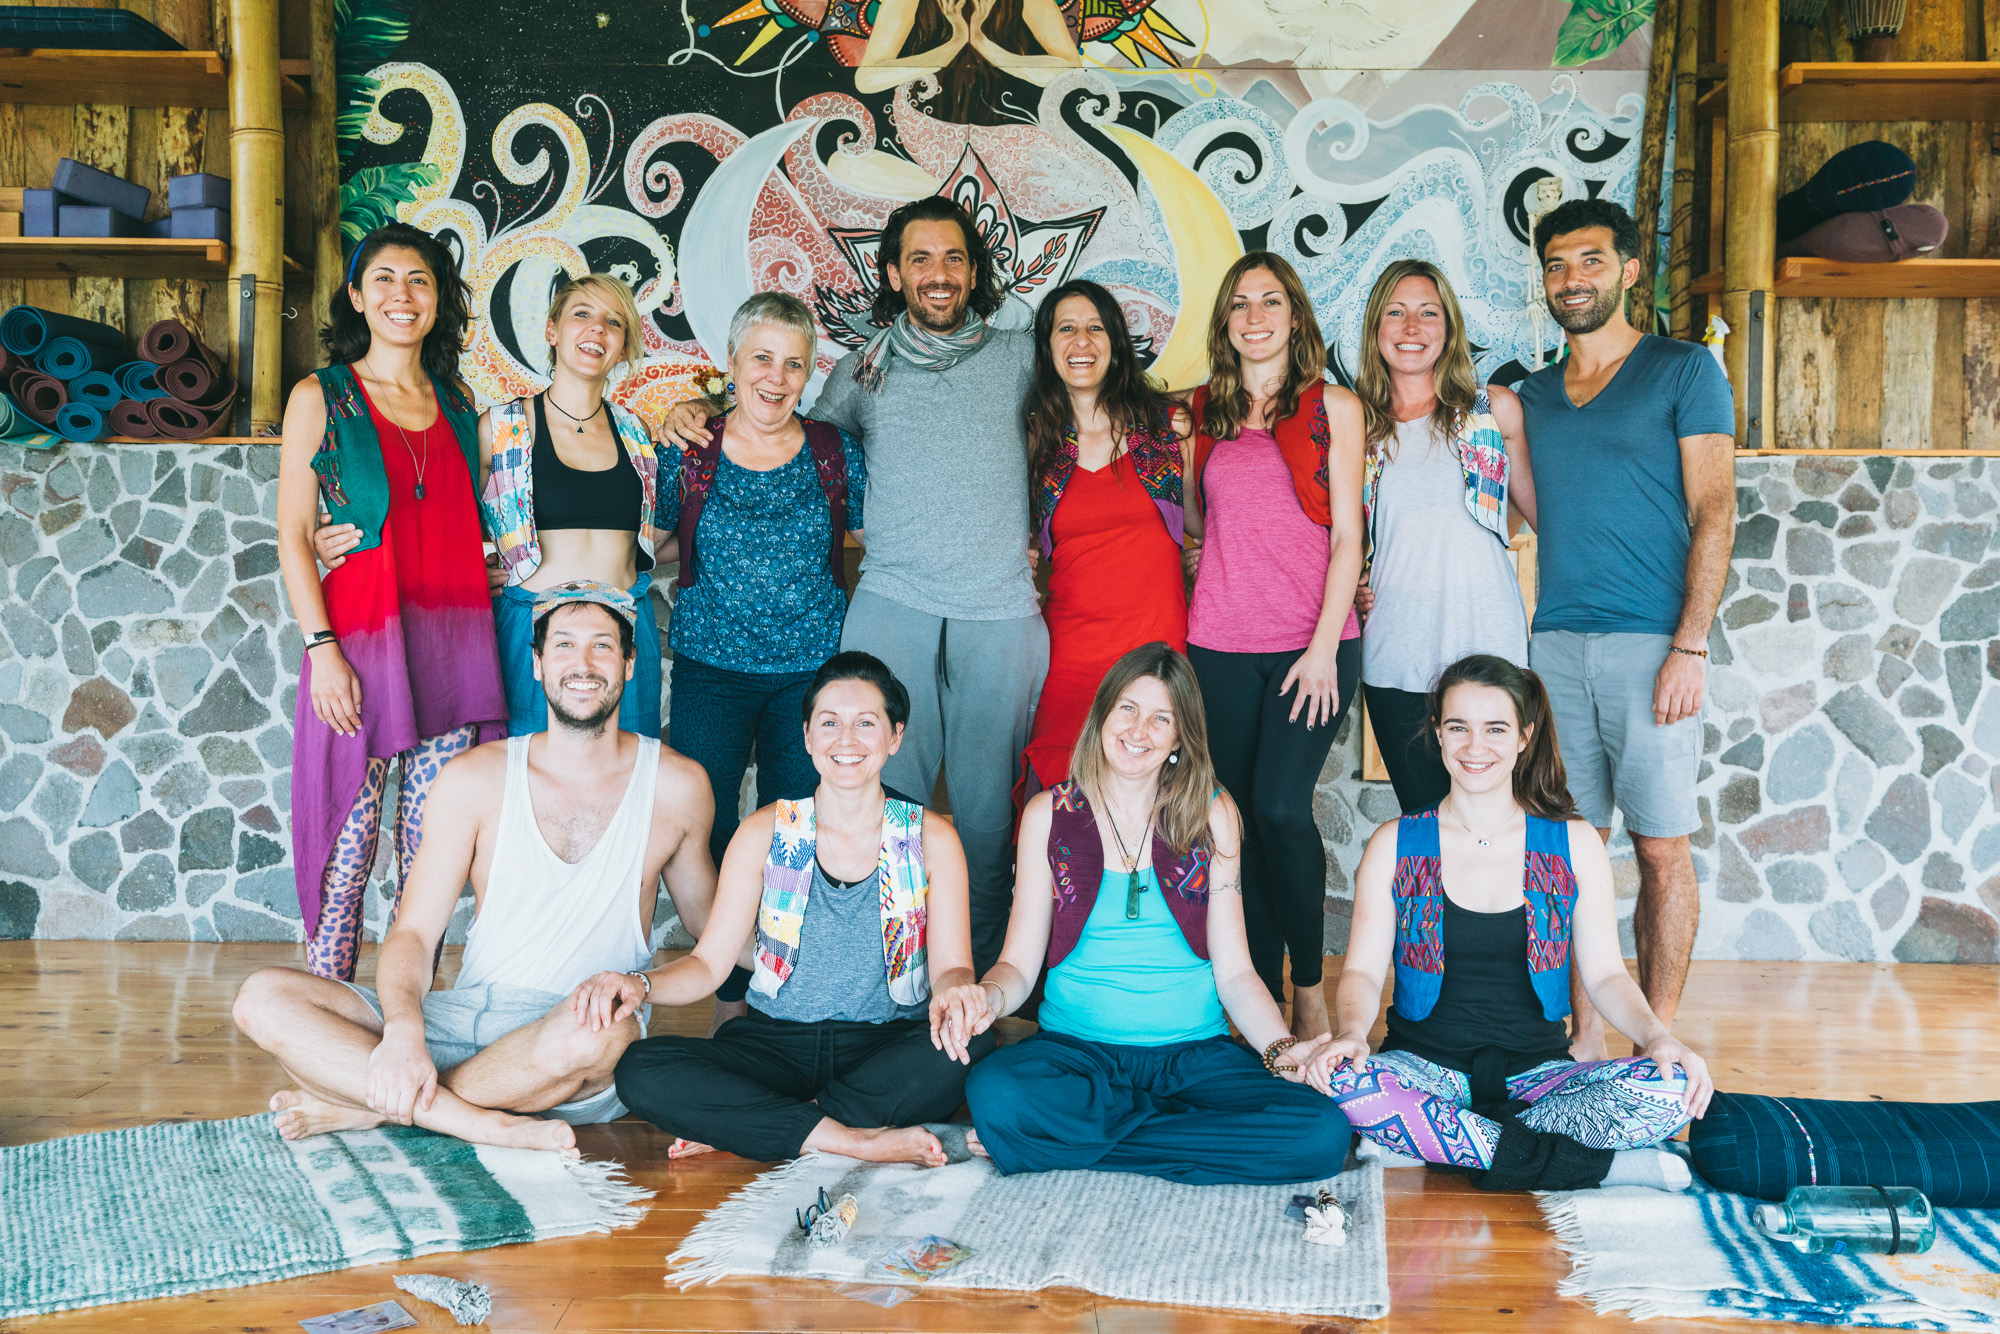 The Alchemy of Living group